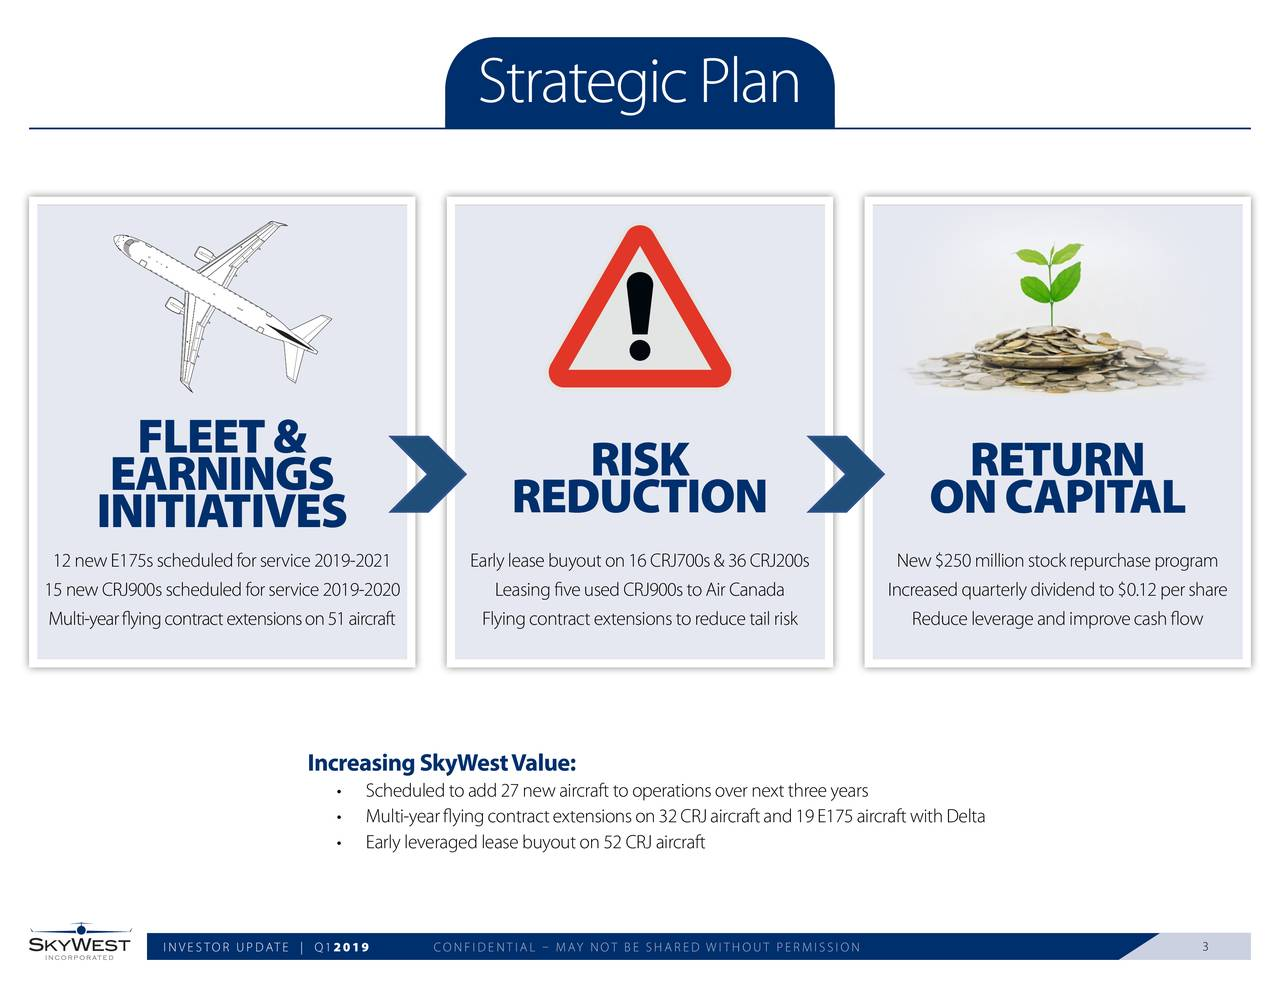 FLEET& RISK RETURN EARNINGS INITIATIVES REDUCTION ONCAPITAL 12 new E175s scheduled for servicEarly lease buyout on 16 CRJ700s New $250 million stock repurchase program 15 new CRJ900s scheduled for serviceLeasing five used CRJ900s to AiIncreased quarterly dividend to $0.12 per share Multi-year flying contract extensioFlying contract extensions to redReduce leverage and improve cash flow Increasing SkyWestValue: • Scheduled to add 27 new aircraft to operations over next three years • Multi-year flying contract extensions on 32 CRJ aircraft and 19 E175 aircraft with Delta • Early leveraged lease buyout on 52 CRJ aircraft INVESTOR UPDAT2019Q1 CONFIDENTIAL – MAY NOT BE SHARED WITHOUT PERMISSION 3